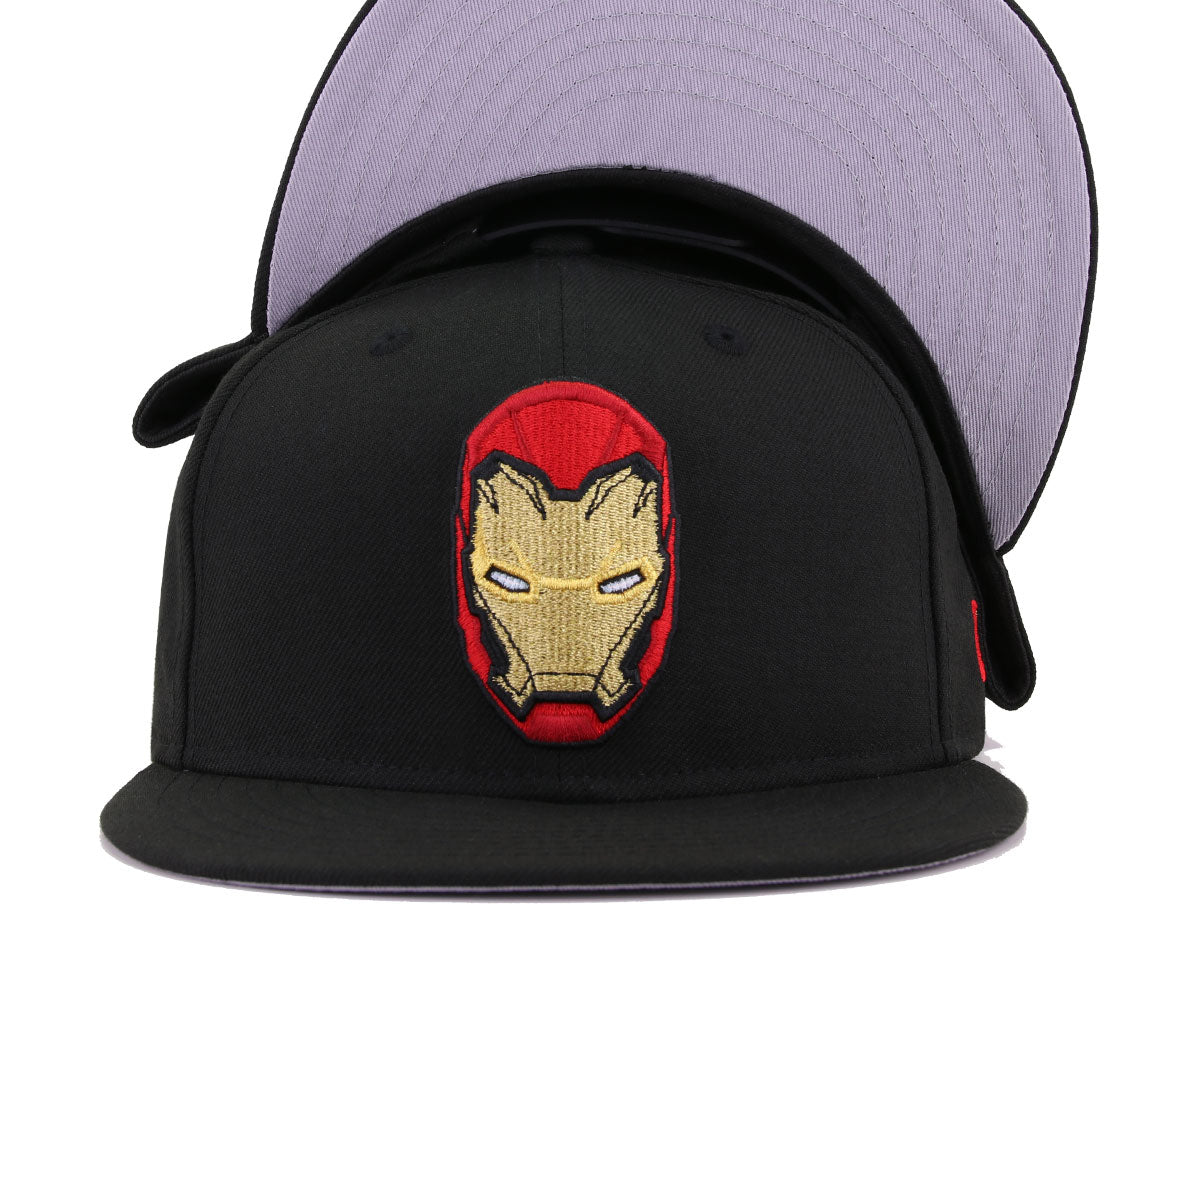 Marvel Comics Iron Man Black New Era 9Fifty Snapback